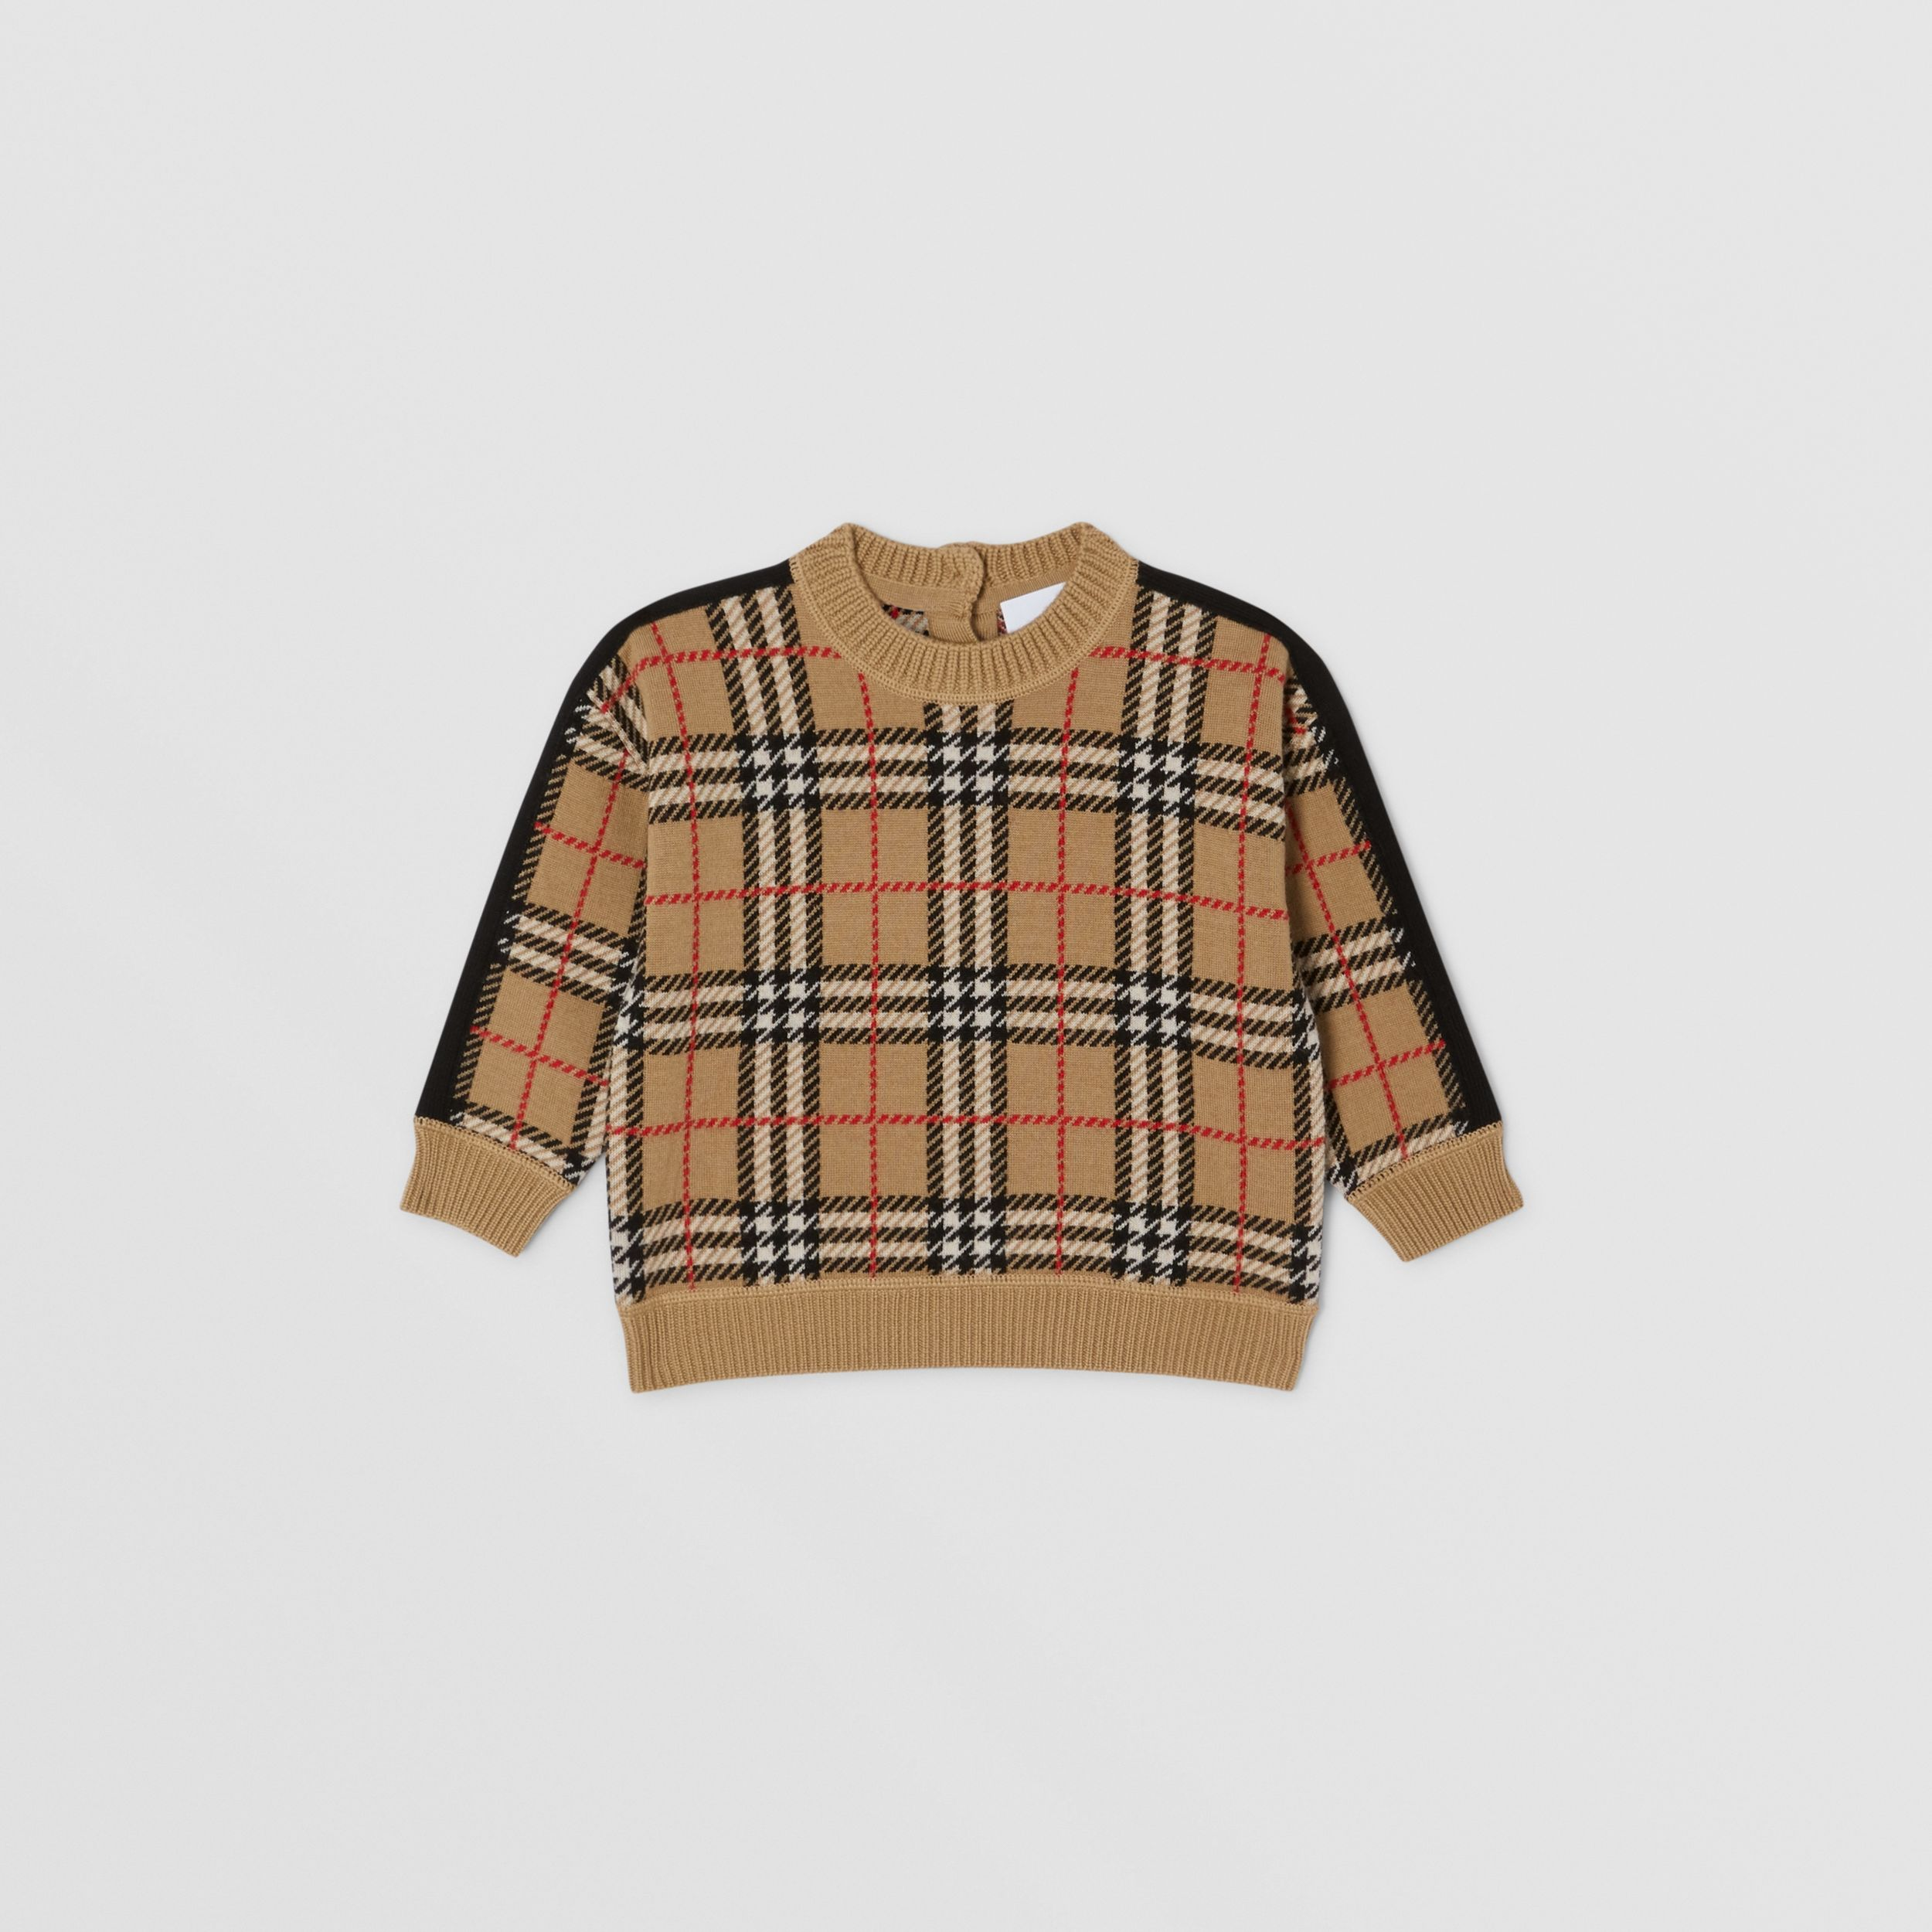 Check Merino Wool Jacquard Sweater in Archive Beige - Children | Burberry - 1